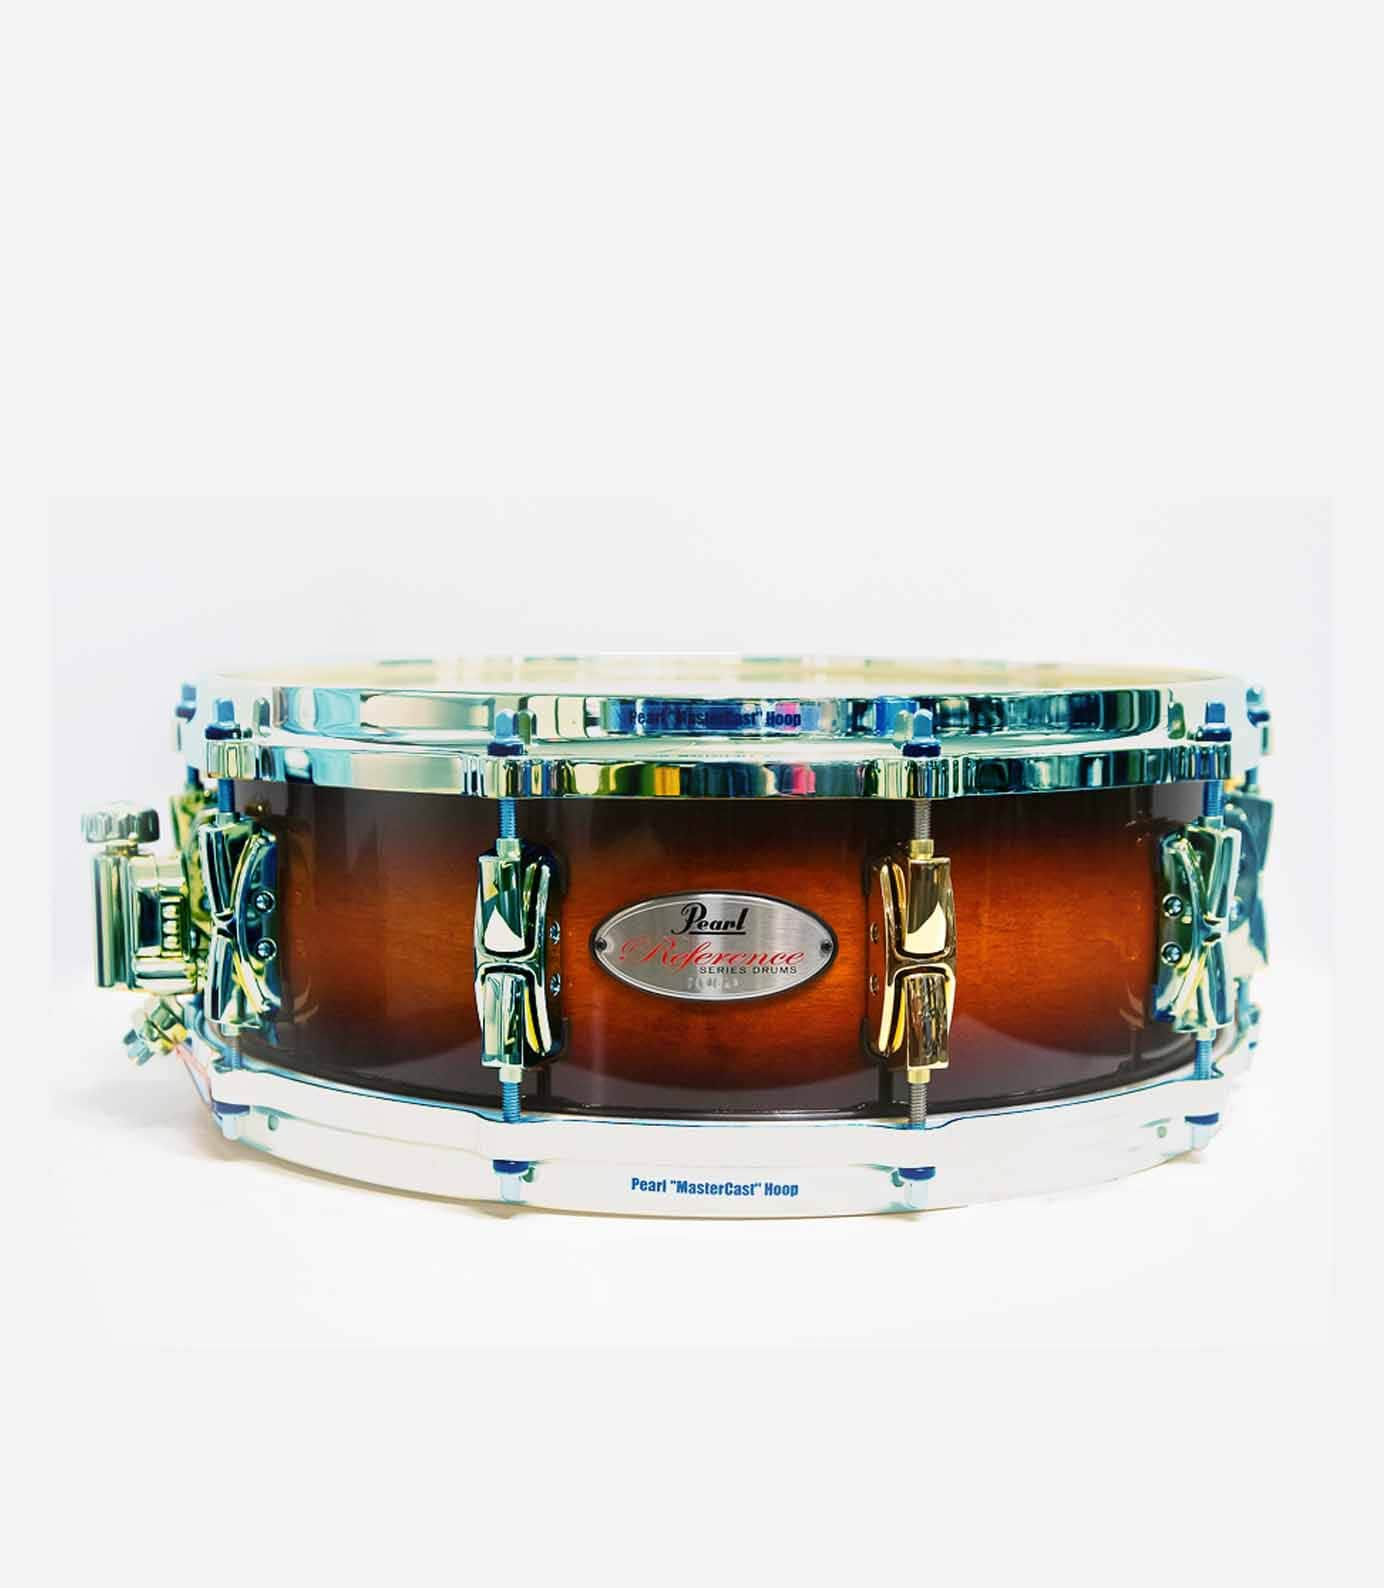 buy pearl rf1465s c 342 reference 14 x 6.5 snare drum w 20p